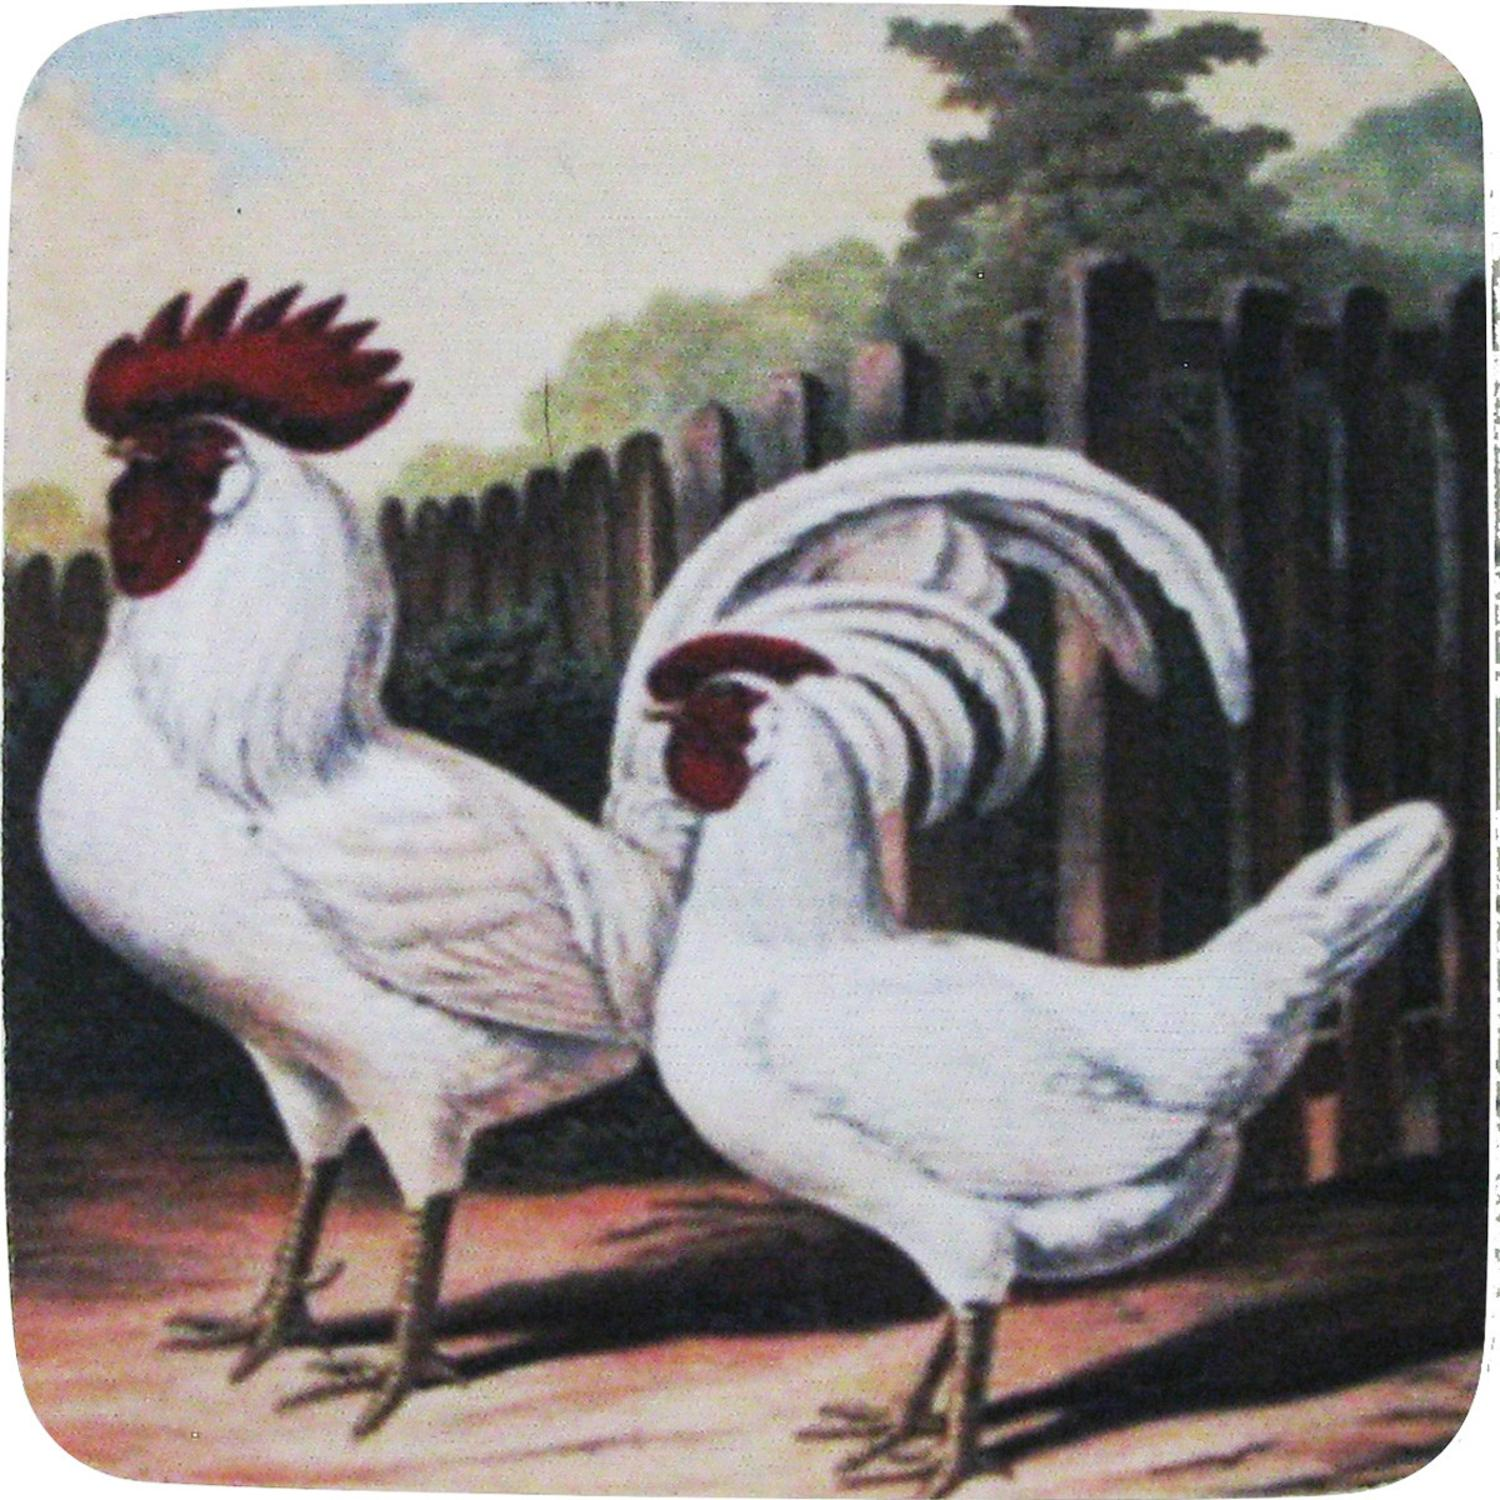 Pack of 8 Absorbent Rural Farm Rooster and Hen Print Cocktail Drink Coasters 4""